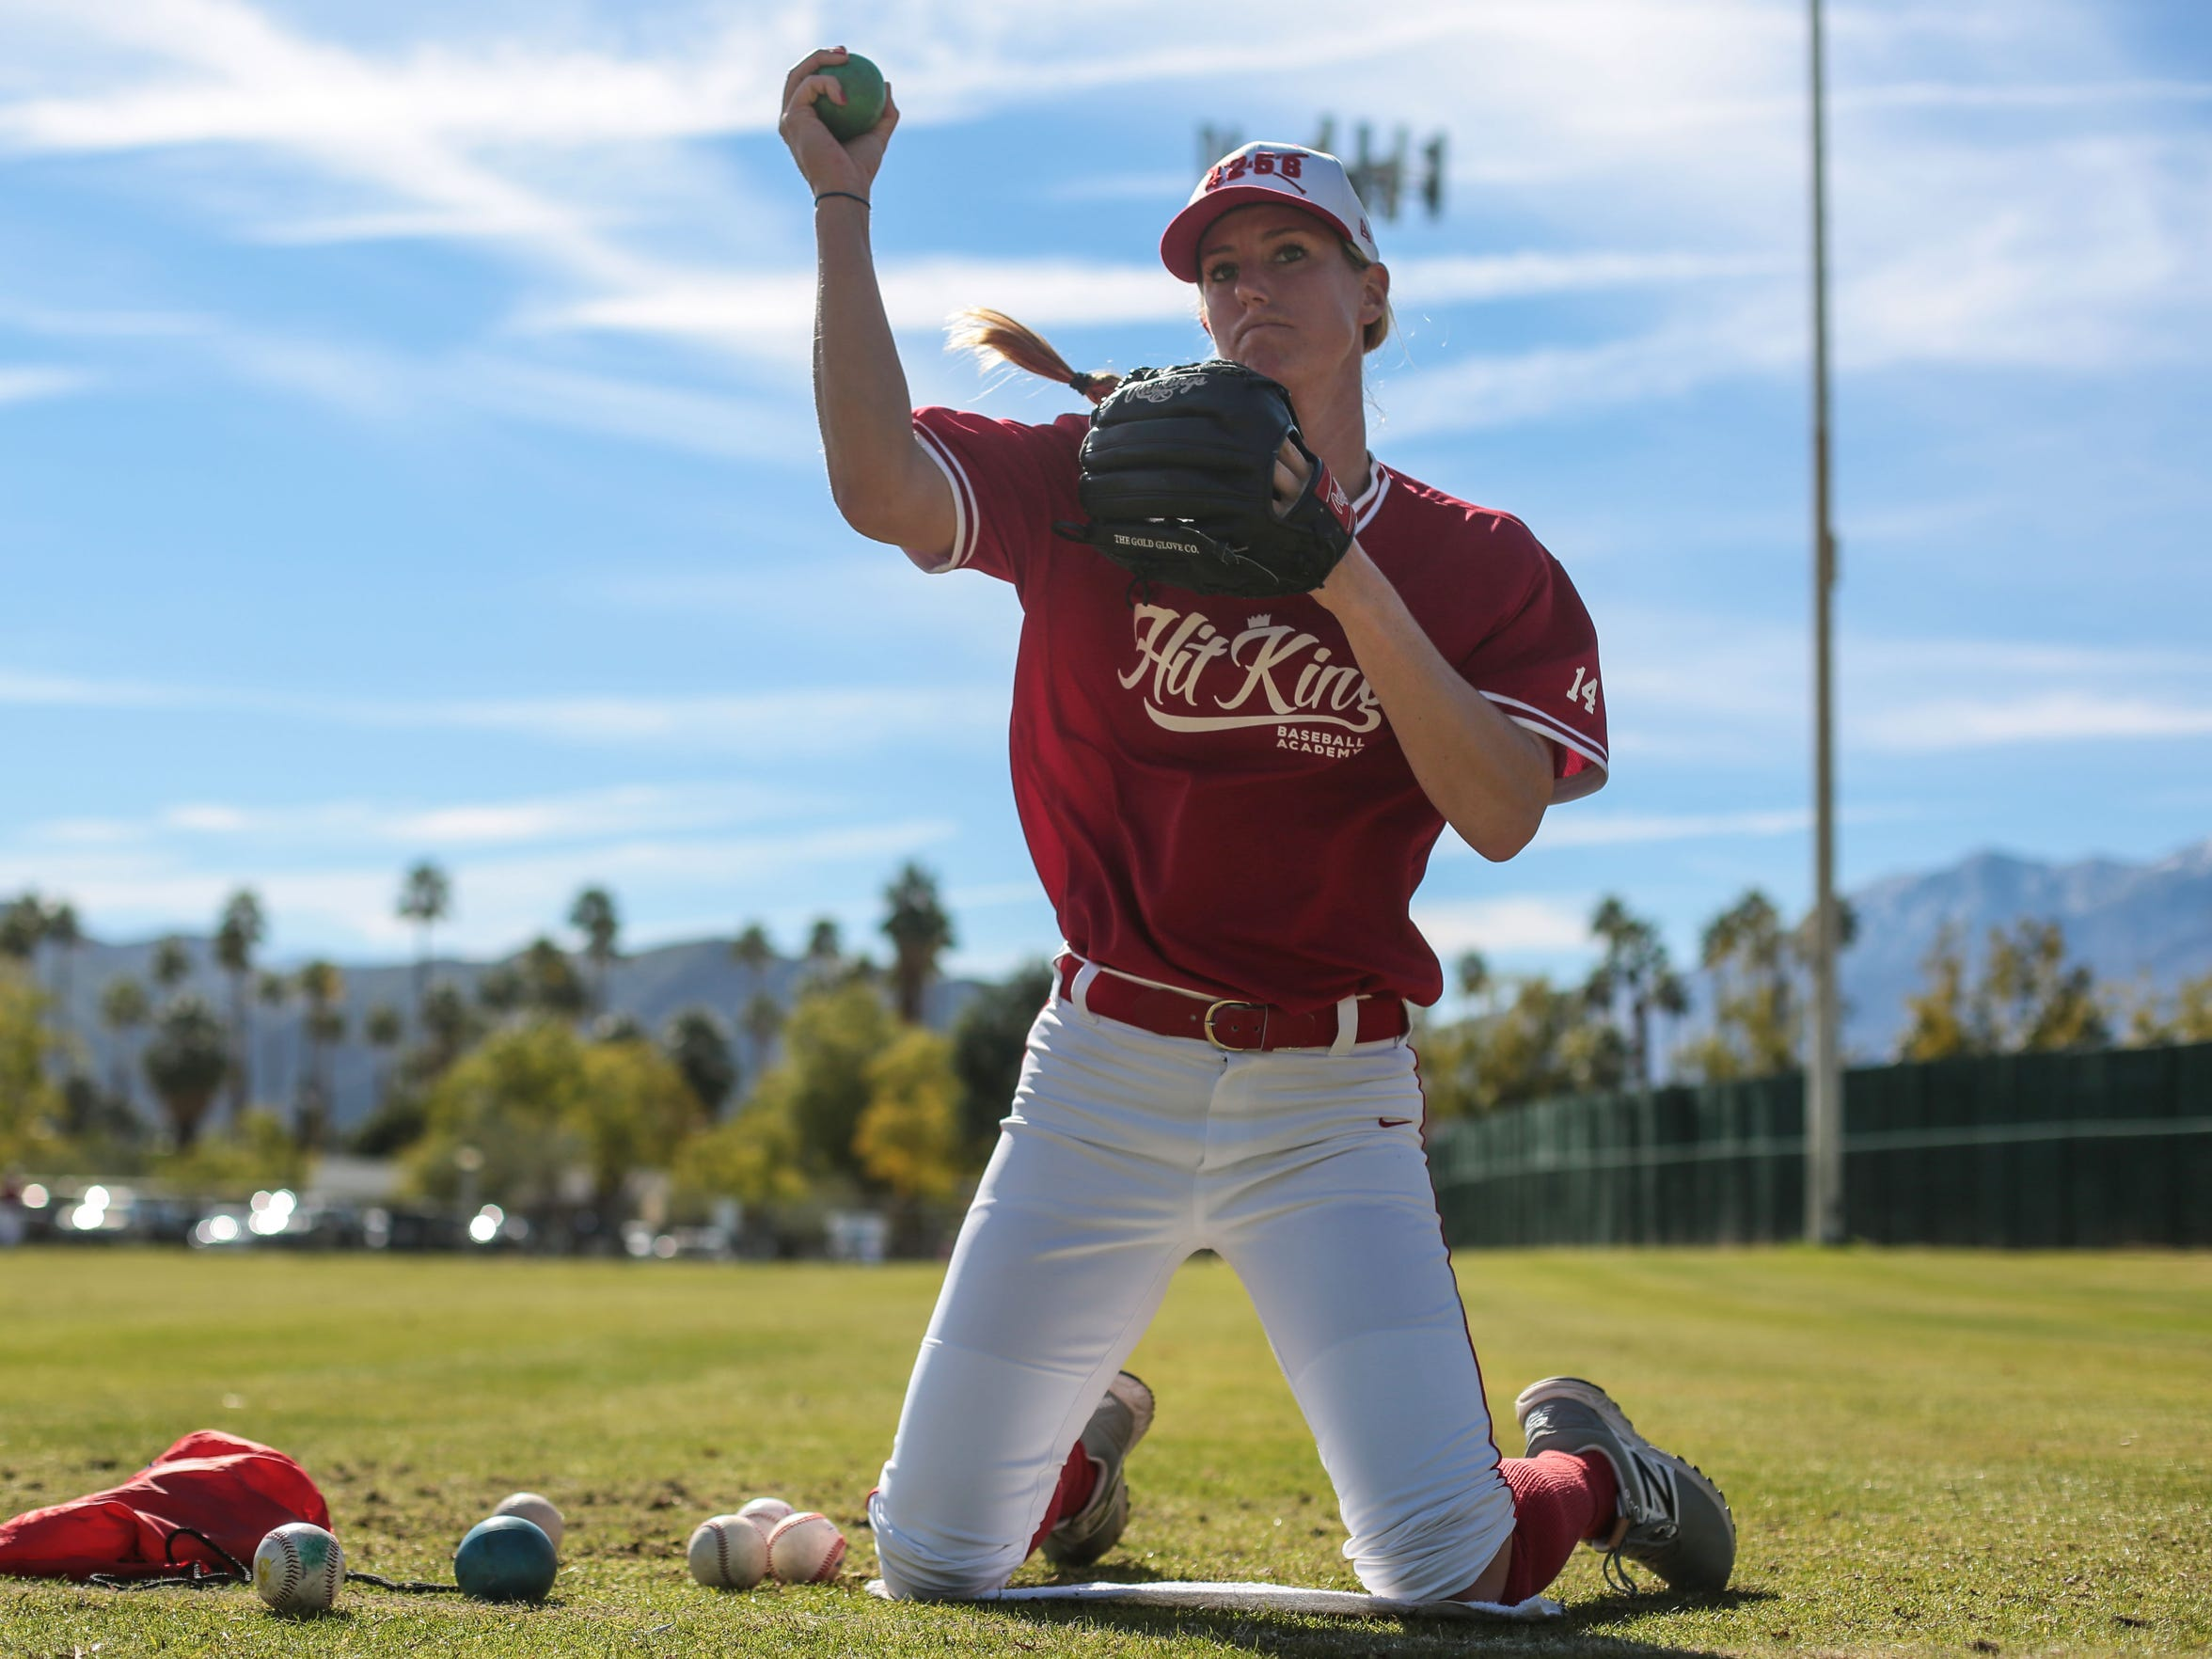 Katie Griffith, the only woman playing in the California Winter League warms up for practice with her team, the Hit King Tuesday, January 31, 2017 in Palm Springs. She is a pitcher with the team.